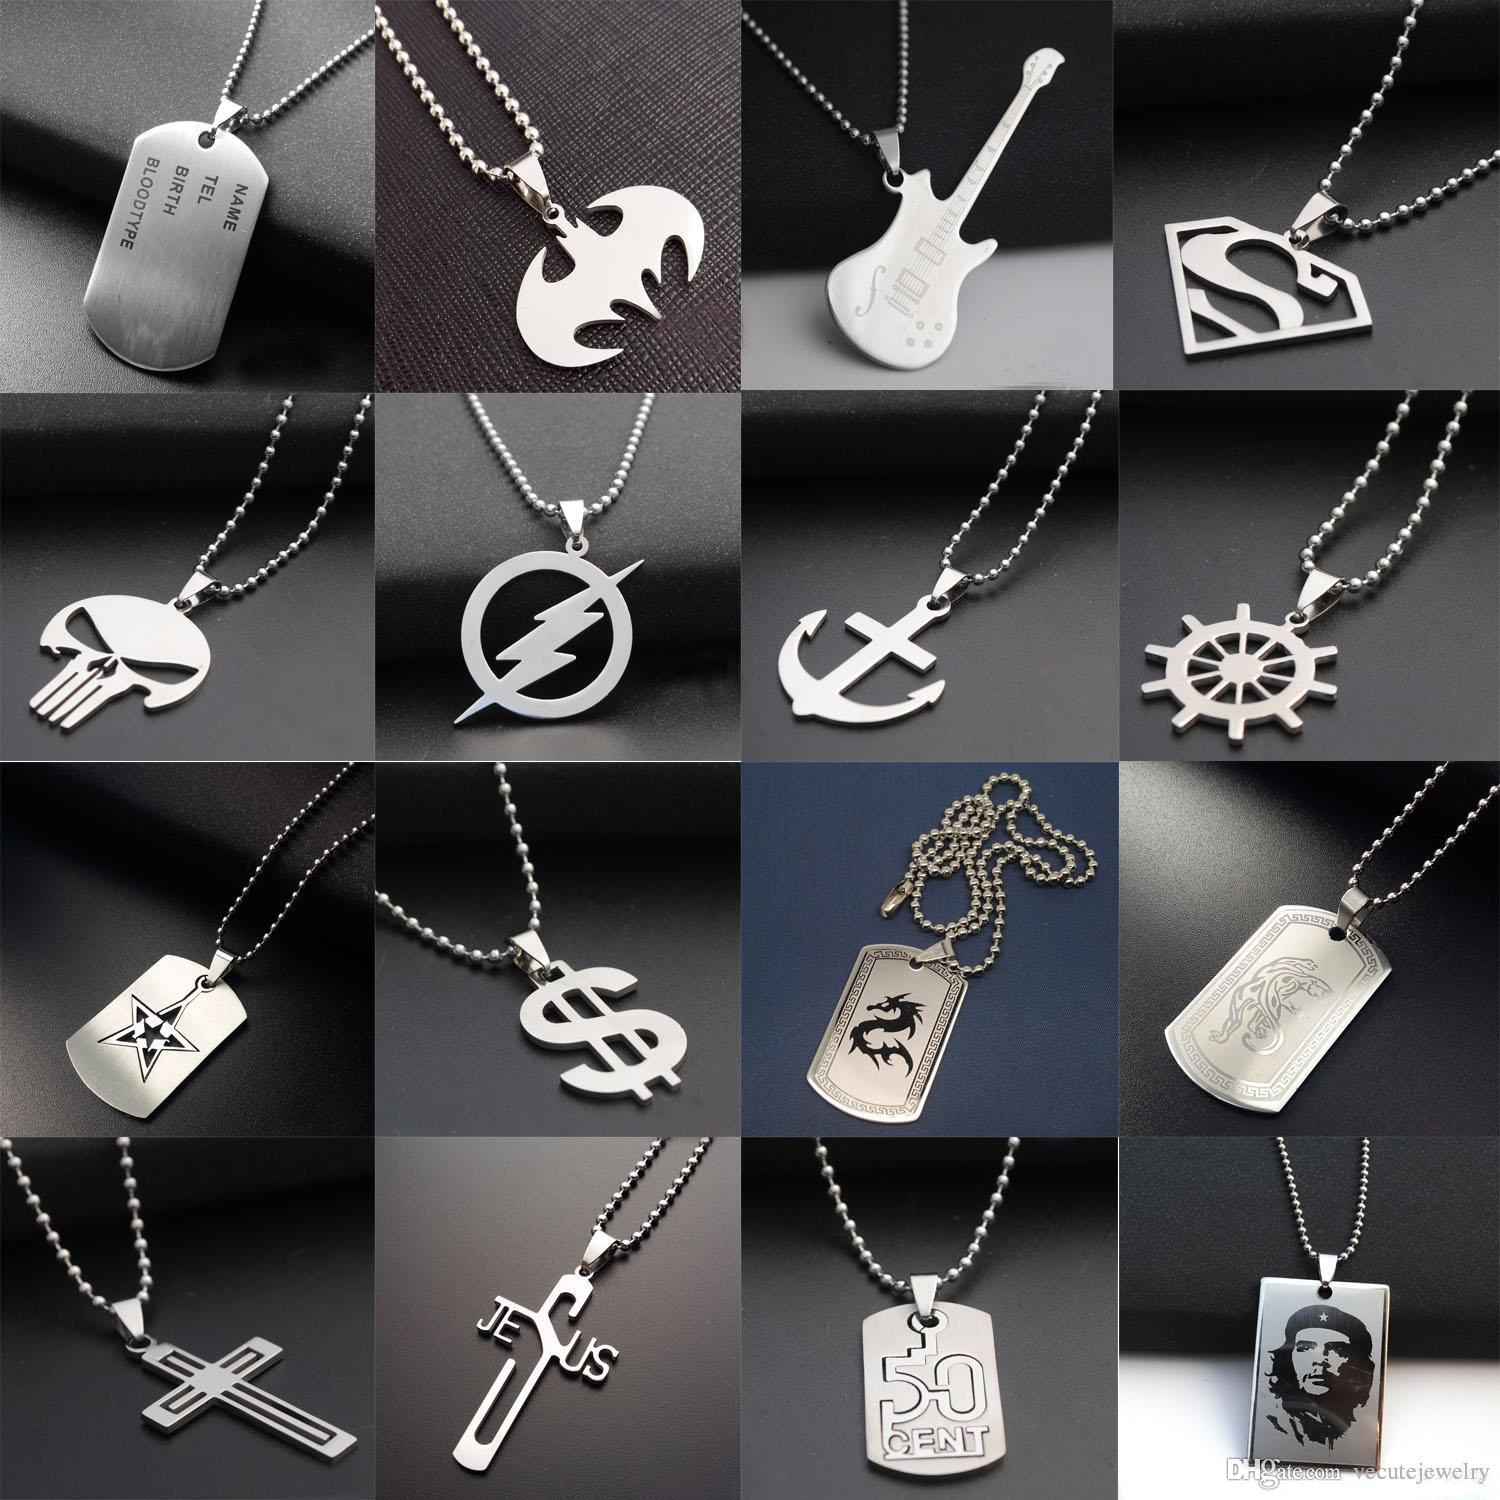 Wholesale fashion stainless steel 316l army dog tag men necklace wholesale fashion stainless steel 316l army dog tag men necklace cs games pendant necklaces charms jewelry for man superhero necklaces fans nice gift silver mozeypictures Image collections